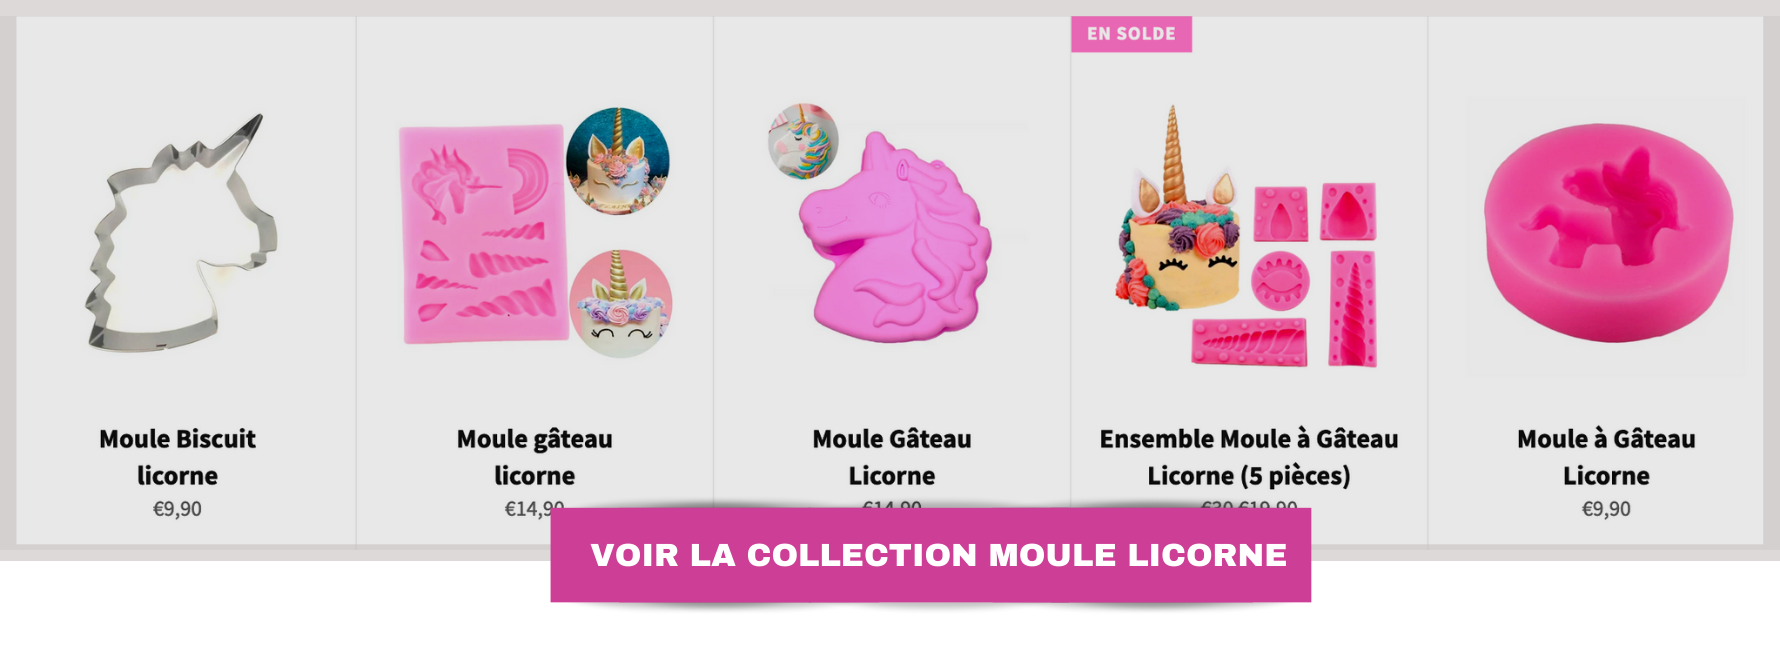 collection moule licorne